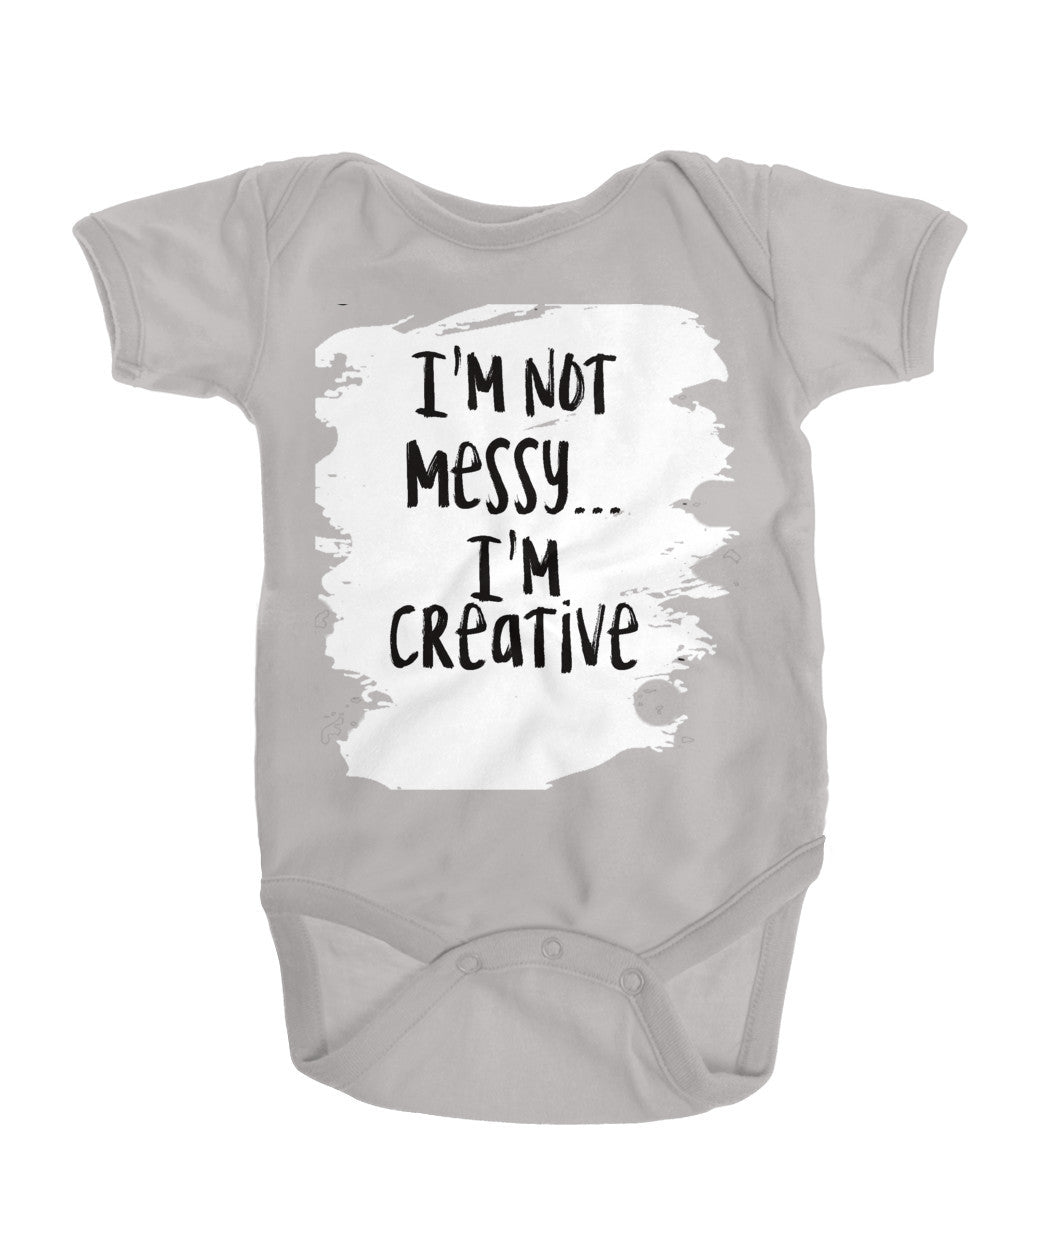 I'm Not MESSY, I'm CREATIVE - Artified Apparel